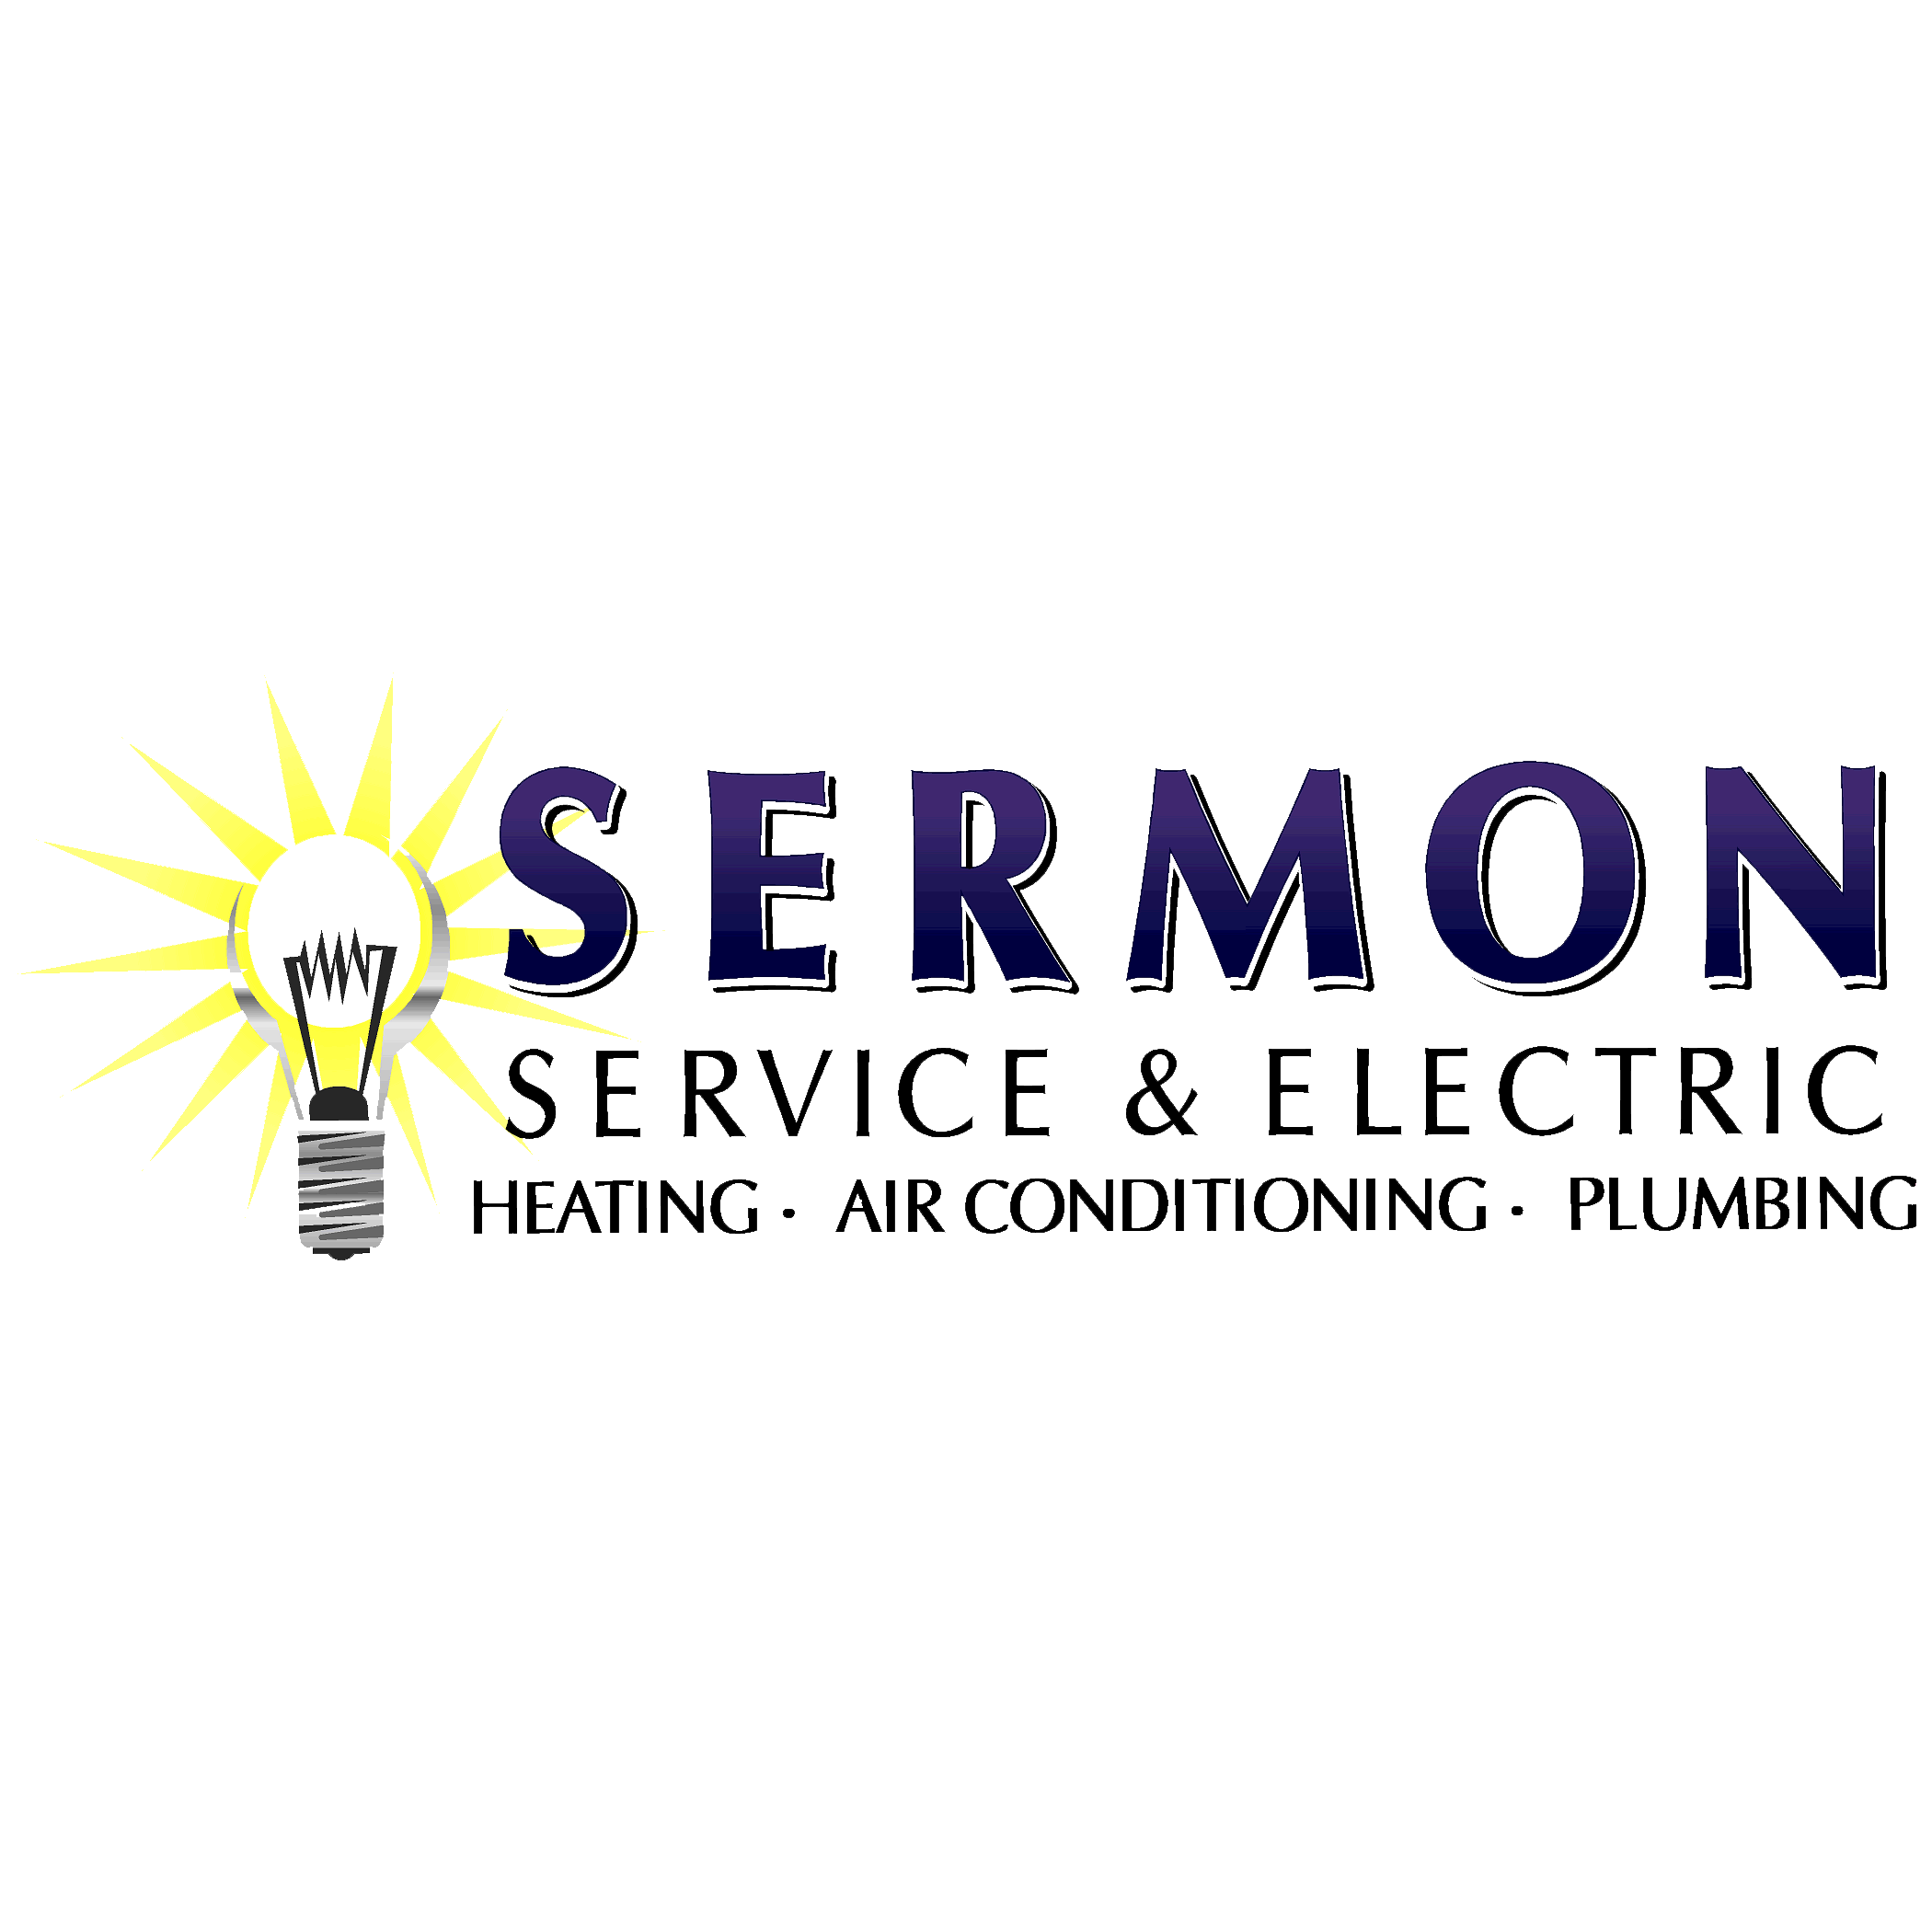 Sermon Service and Electric